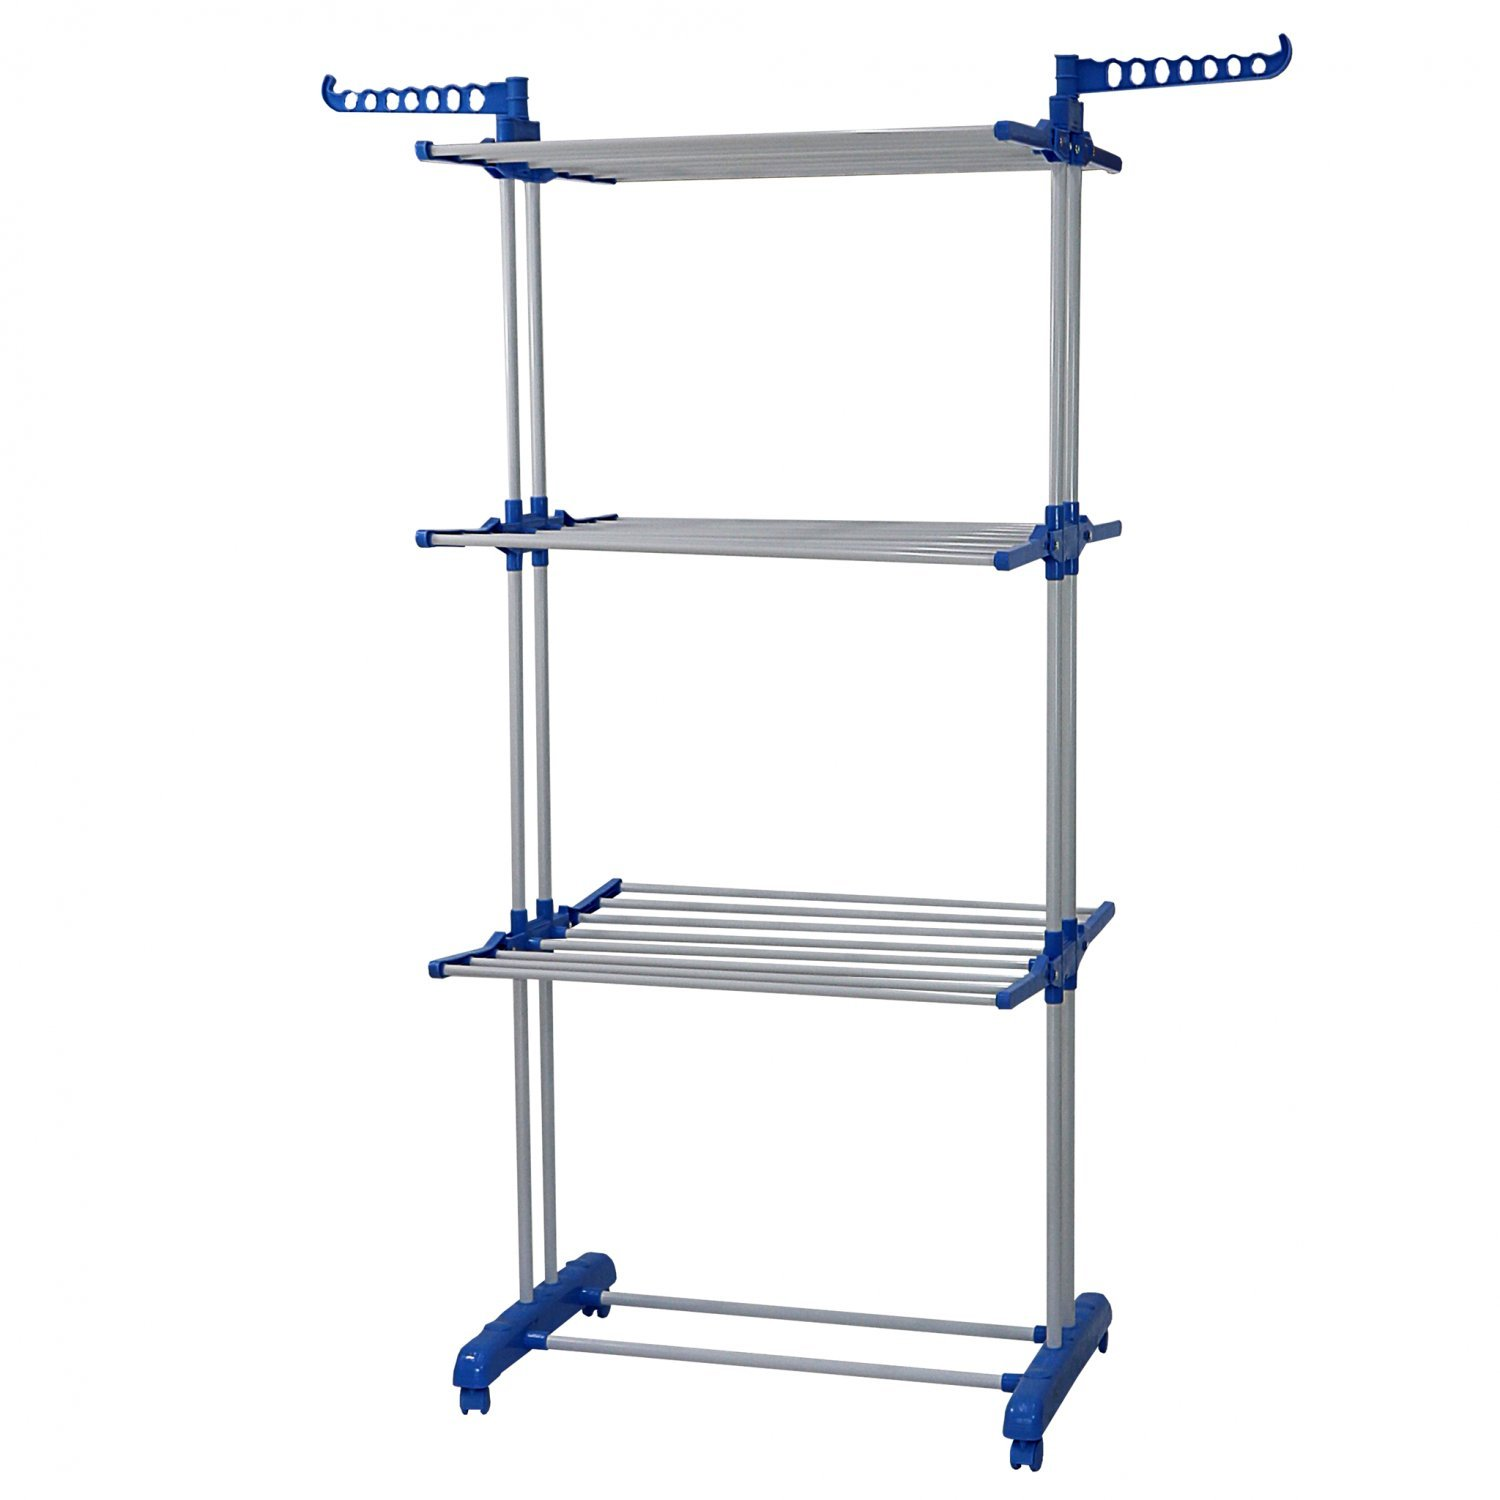 3 Tier Indoor Folding Clothes Airer Laundry Hanger Dryer Rack 24 99 Oypla Stocking The Very Best In Toys Electrical Furniture Homeware Garden Gifts And Much More